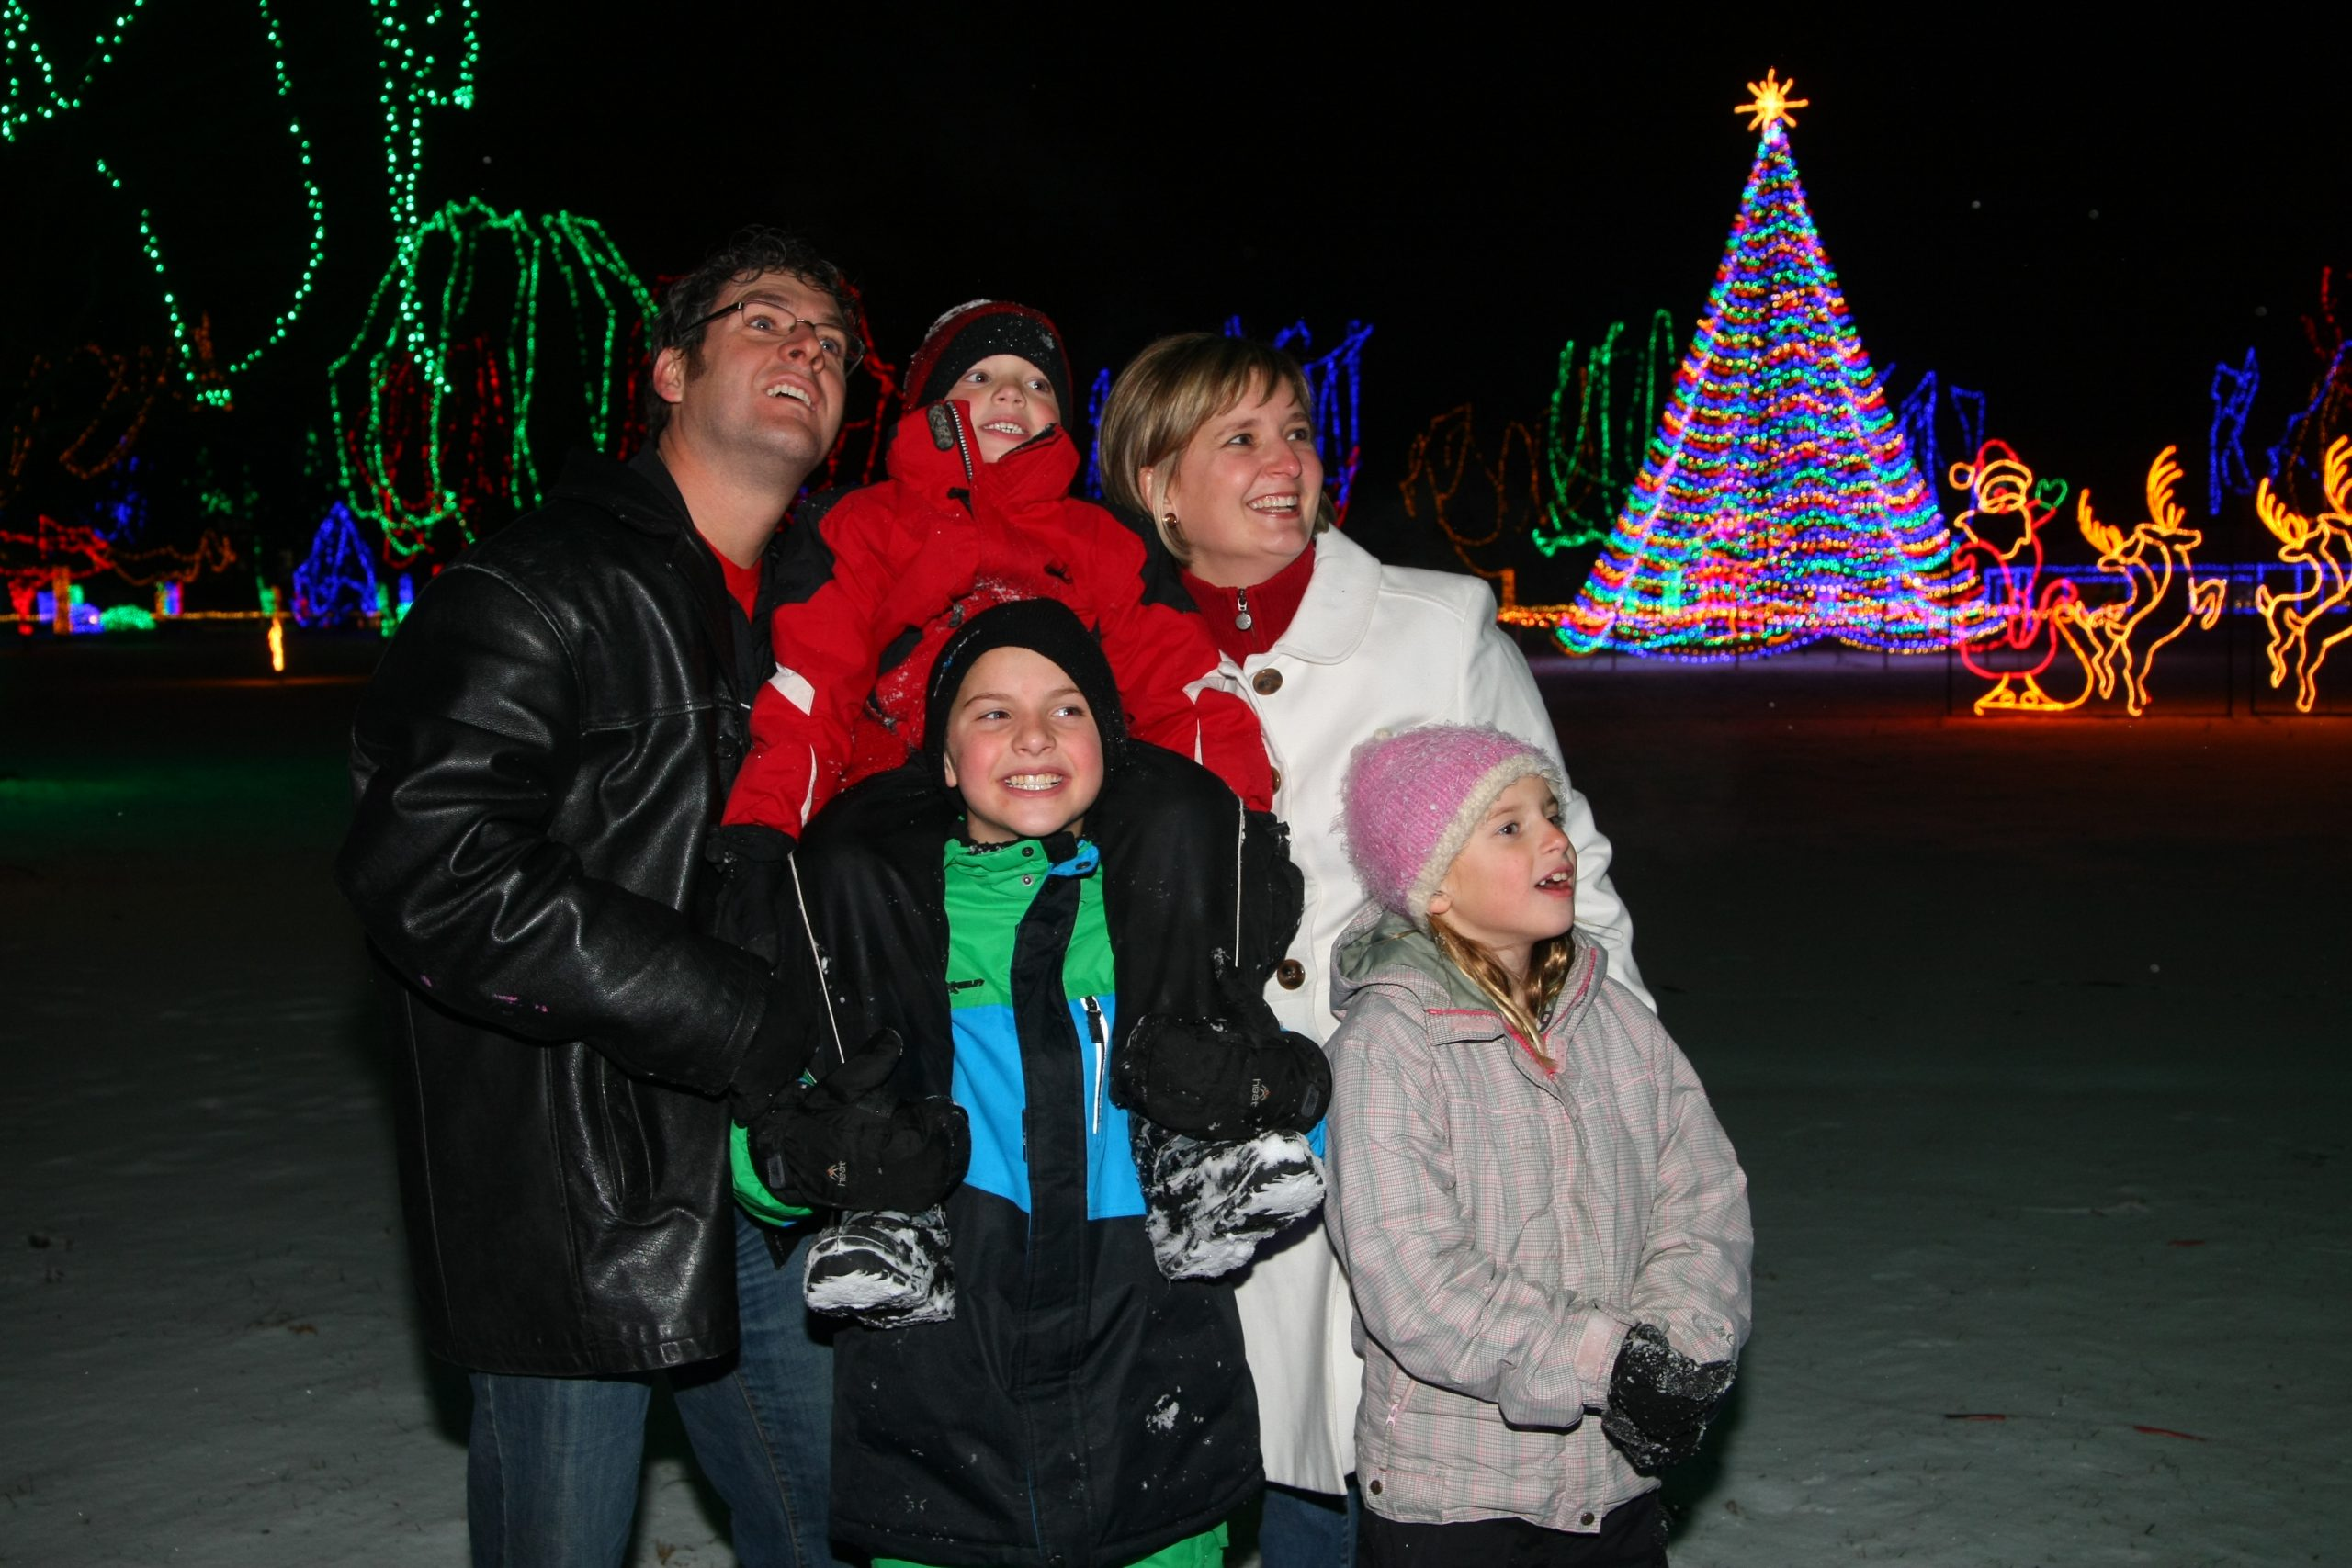 Family Time at Holiday Lights